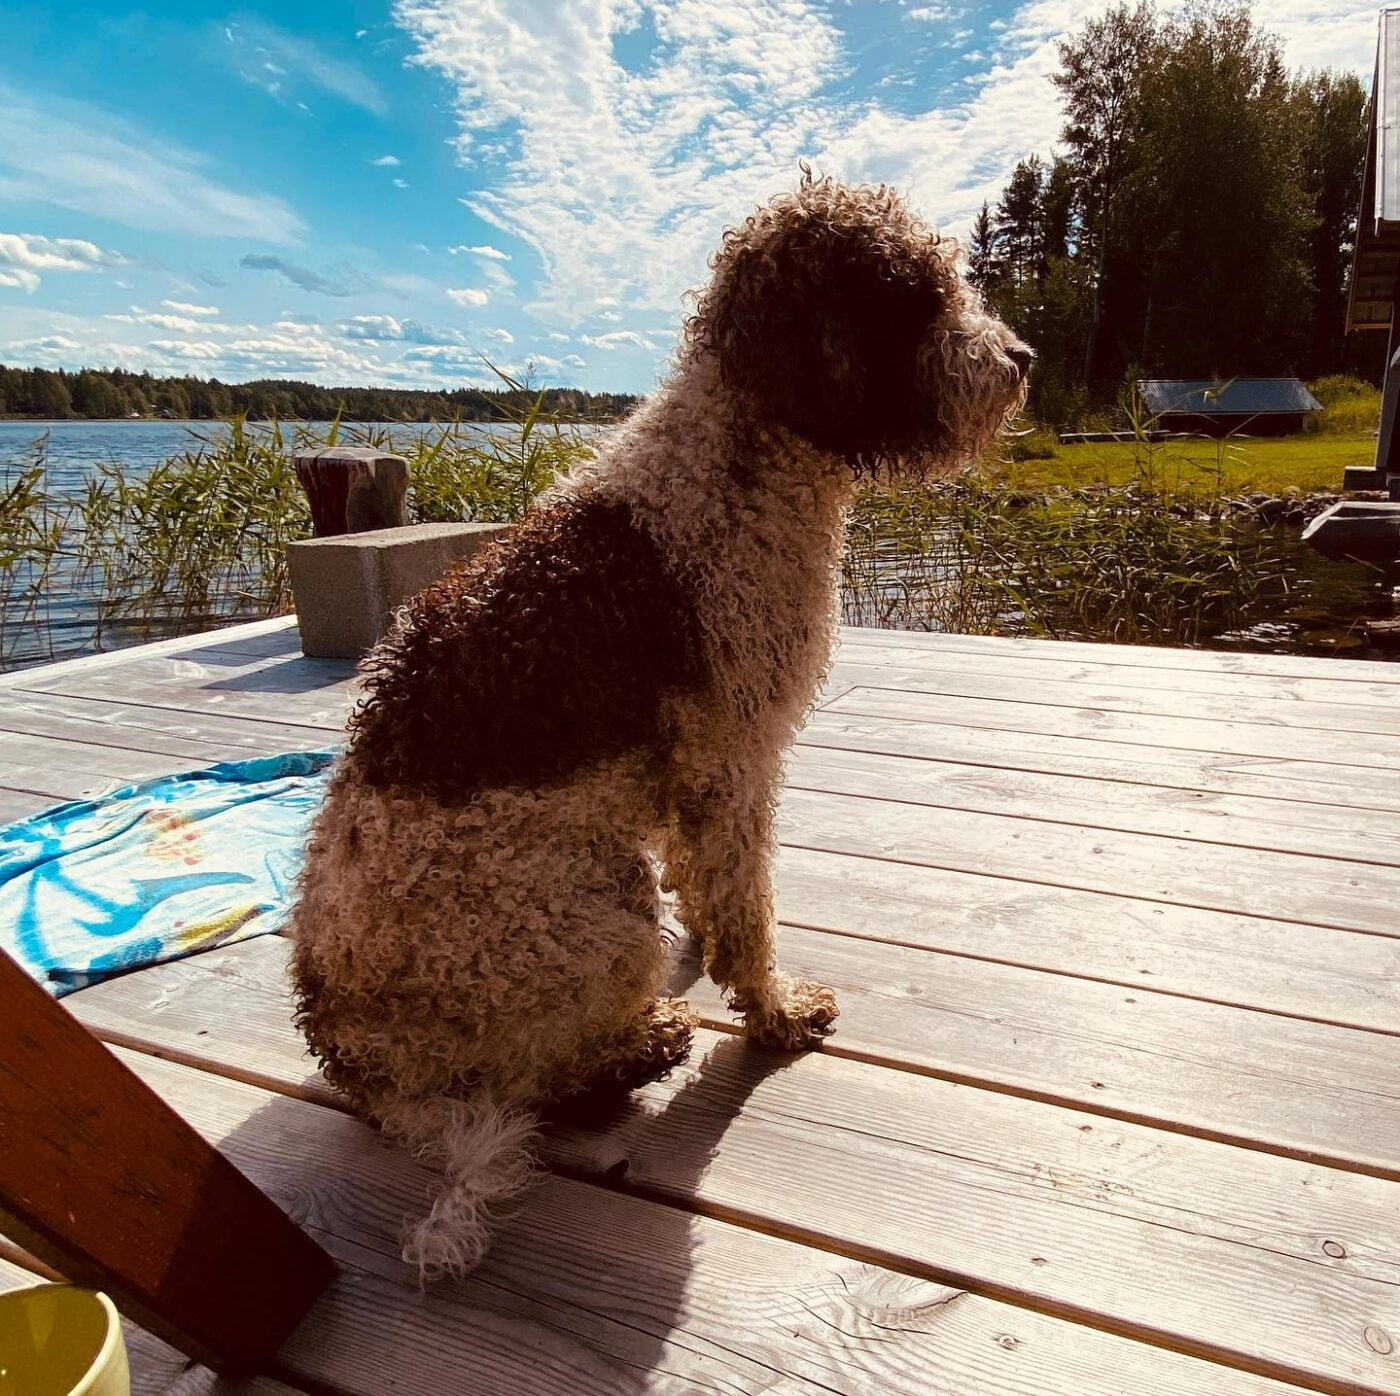 Another paradise dog in life. #lagottosofinstagram #lagottopuppy #italianwaterdog #truffledog #lagottoromagnolo_daily #happydoglife #Lagotto #Dogs #DogsOfInstagram #Petstagram #Pets #Dogstagram #MyLife #MyDailyLife #PappaJagVillHaEnItalienare #MacLagotto #Falun #Sweden #FF #l4l #instafollow @knappare @liminglindblad @k.rowntree @taxen_coco @h3lvetesjavlar This was posted by my Dad: @kristerlindholmfalun